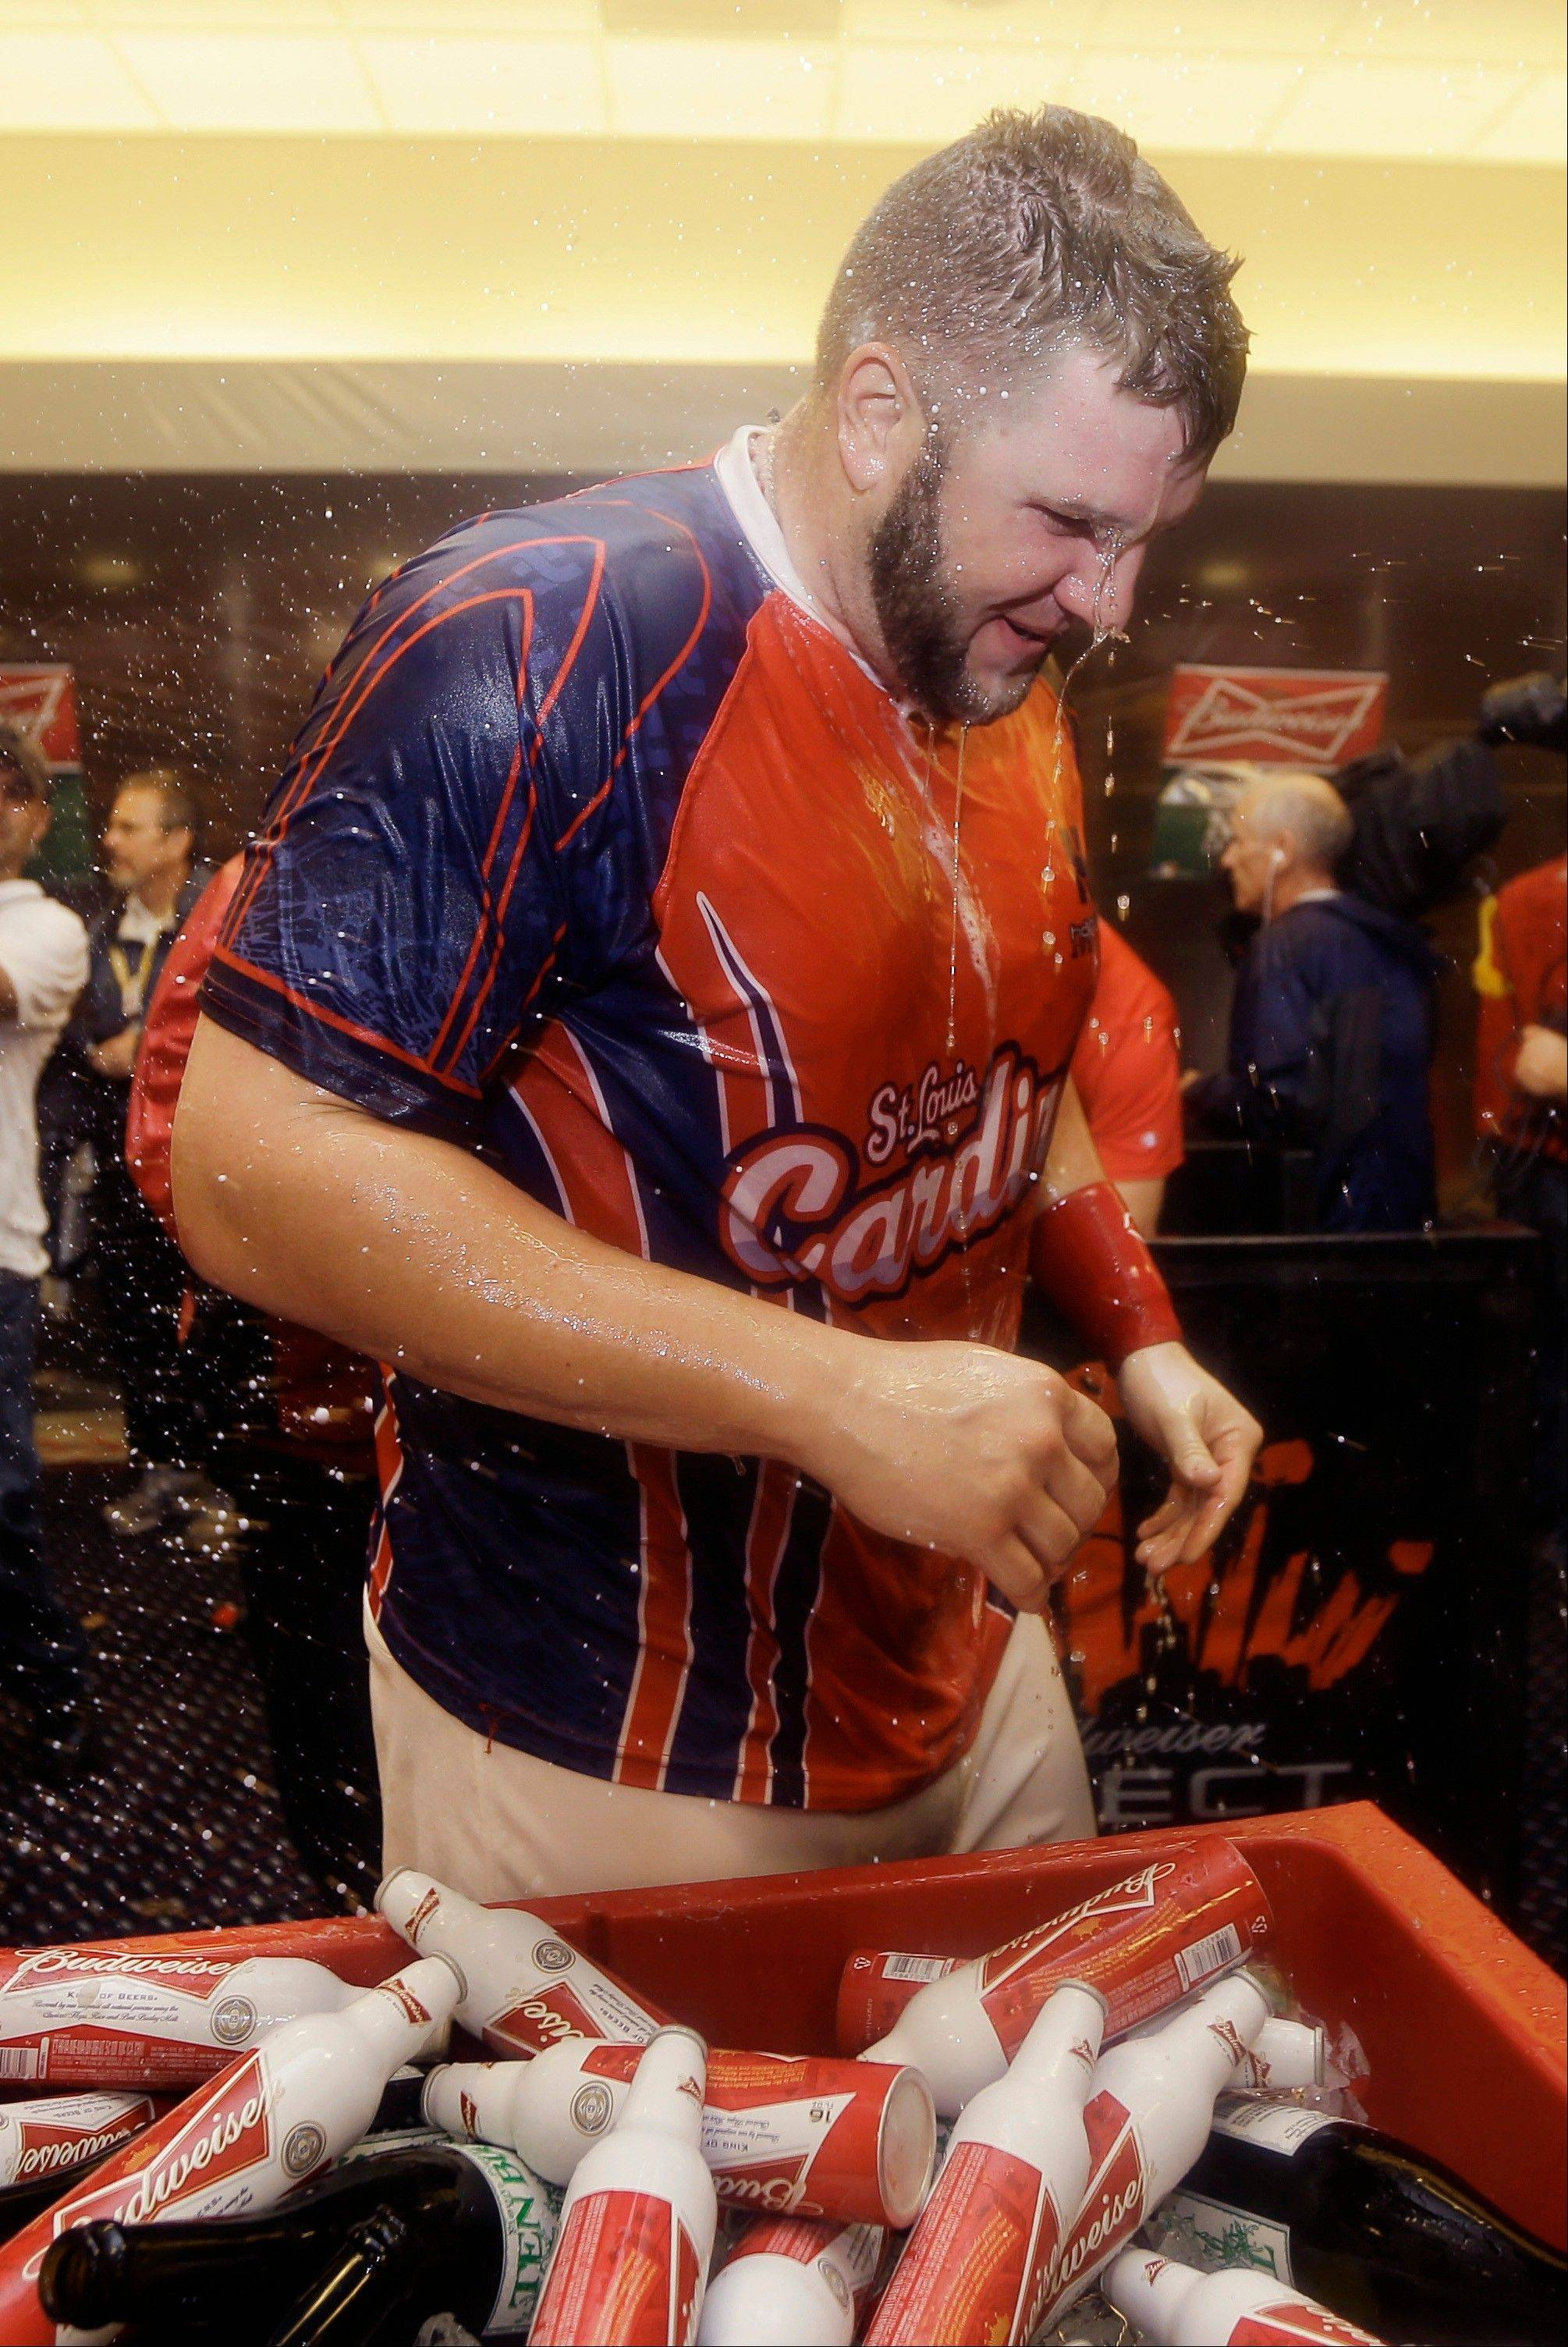 The Cardinals' Matt Adams stands in the clubhouse amid the champagne celebration after the Cardinals defeated the Pittsburgh Pirates to win their division series.